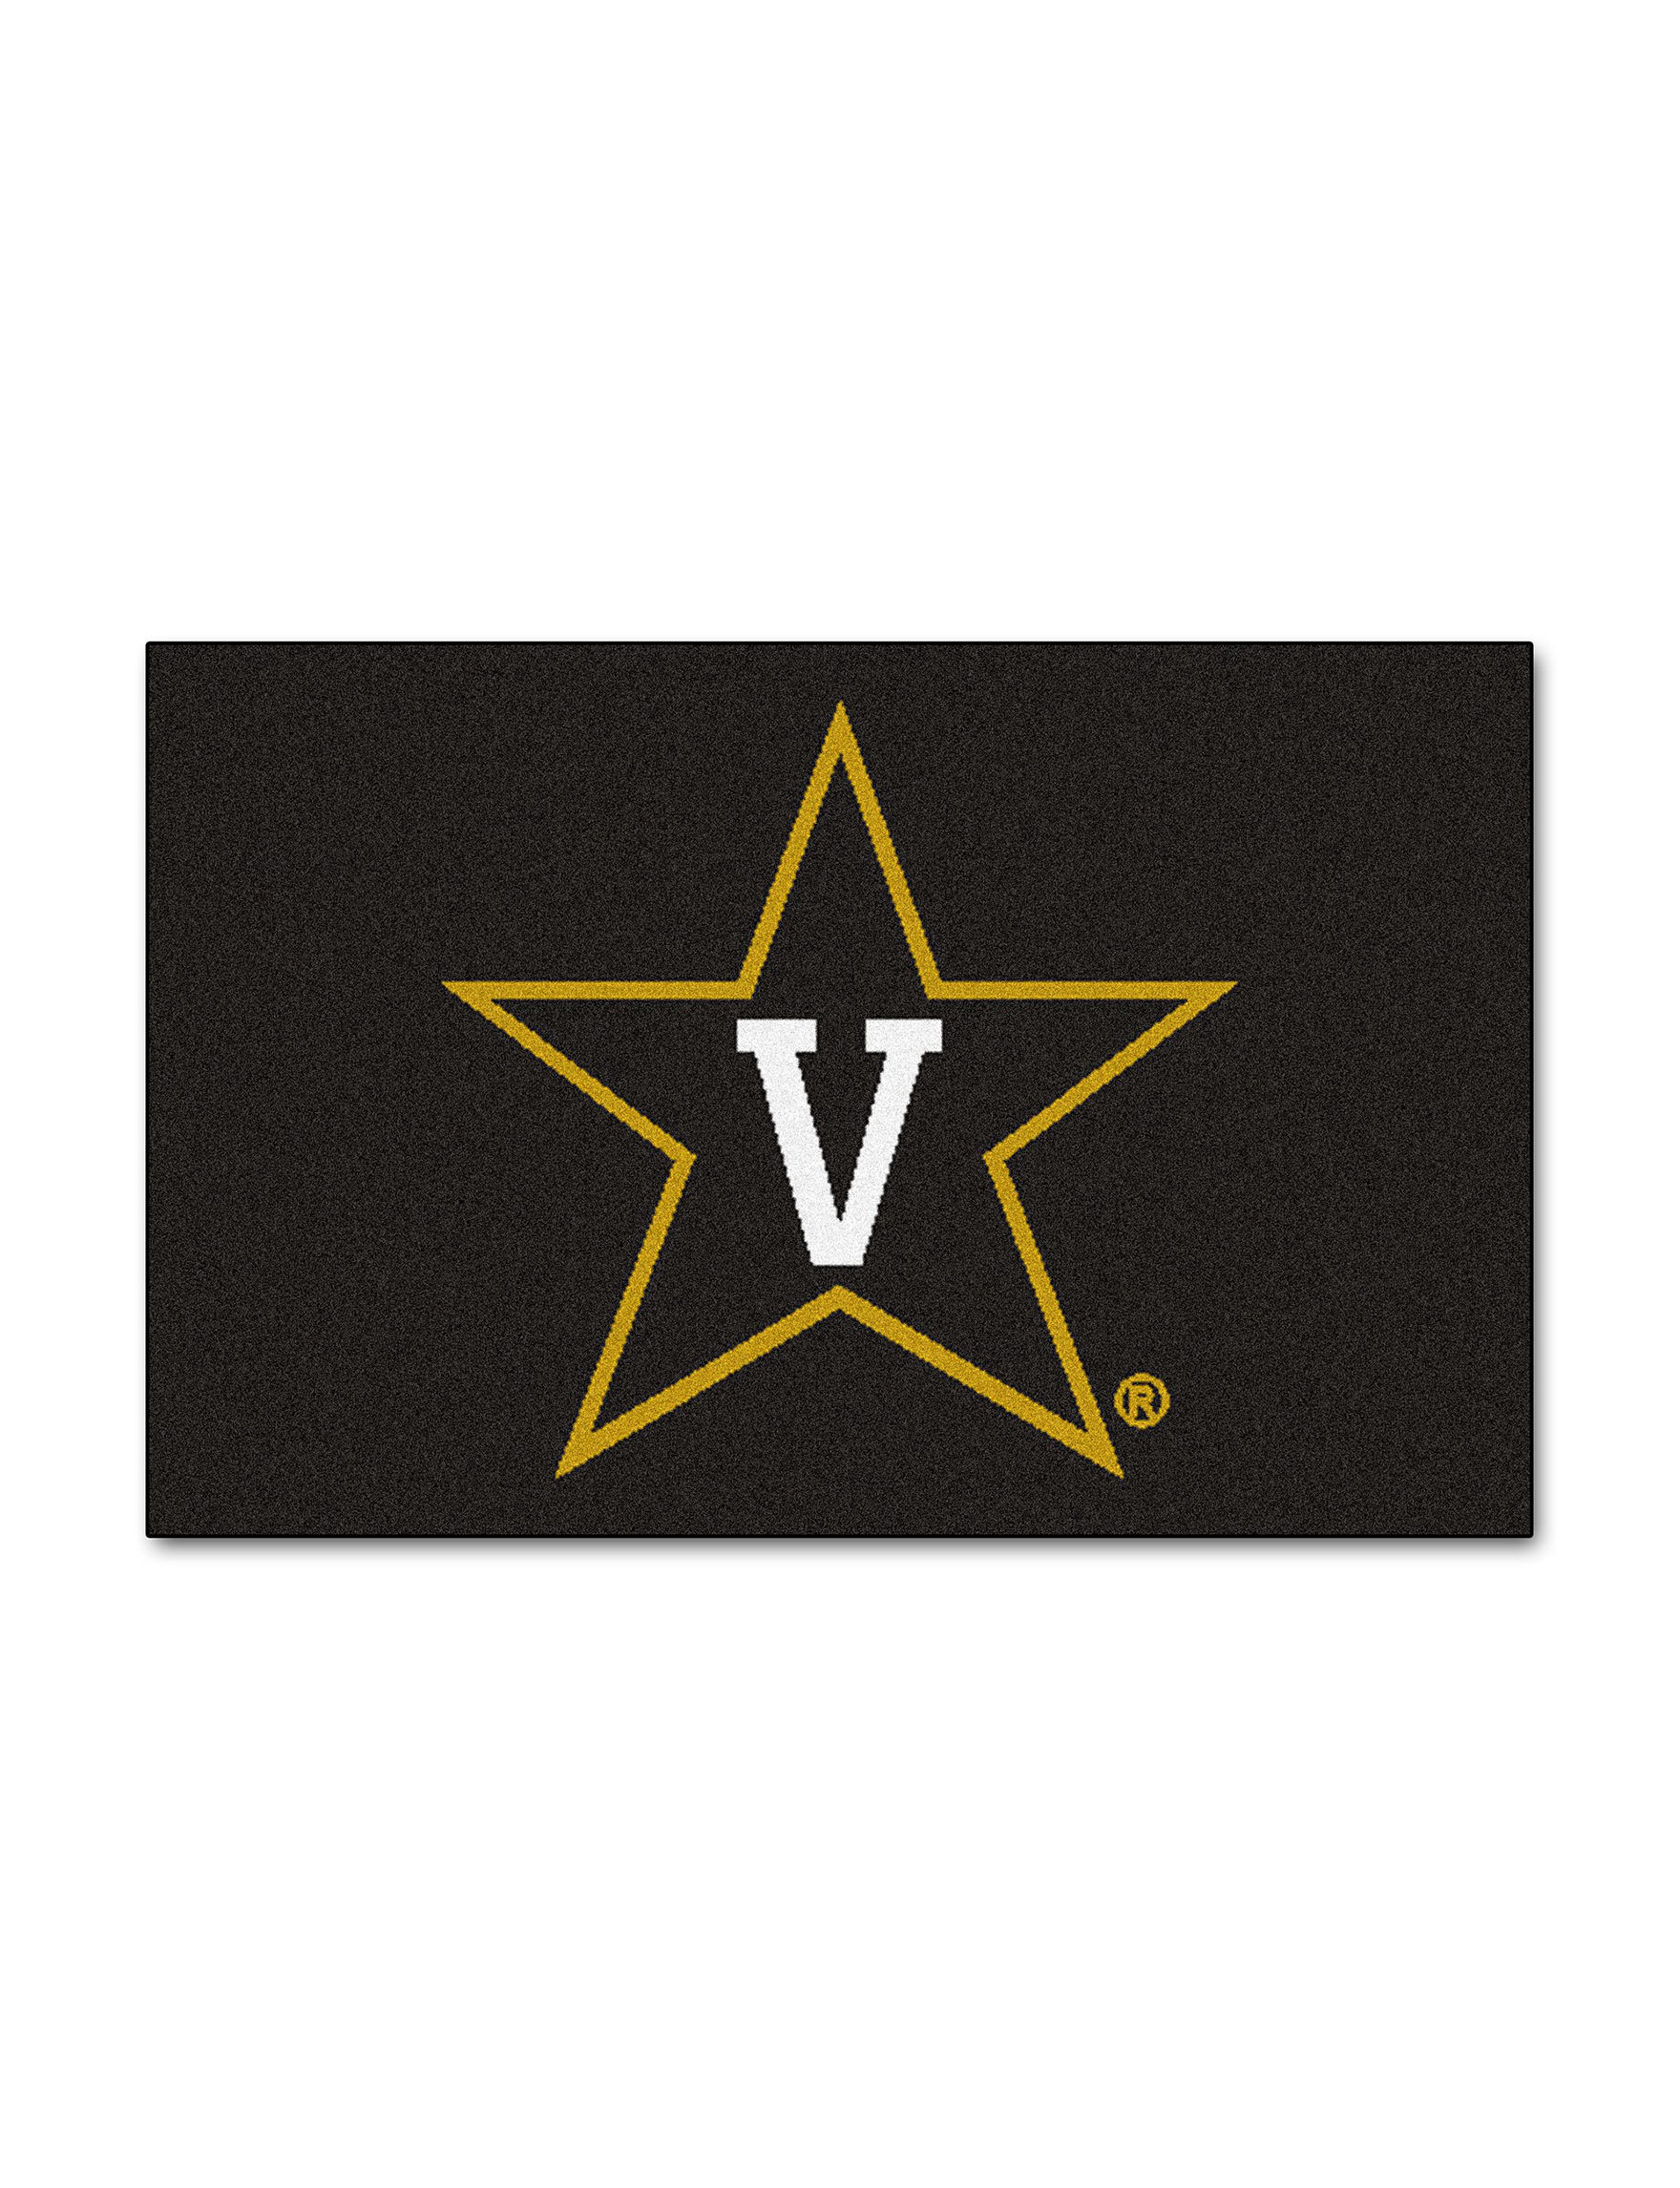 Fanmats Gold / Black Accent Rugs Rugs